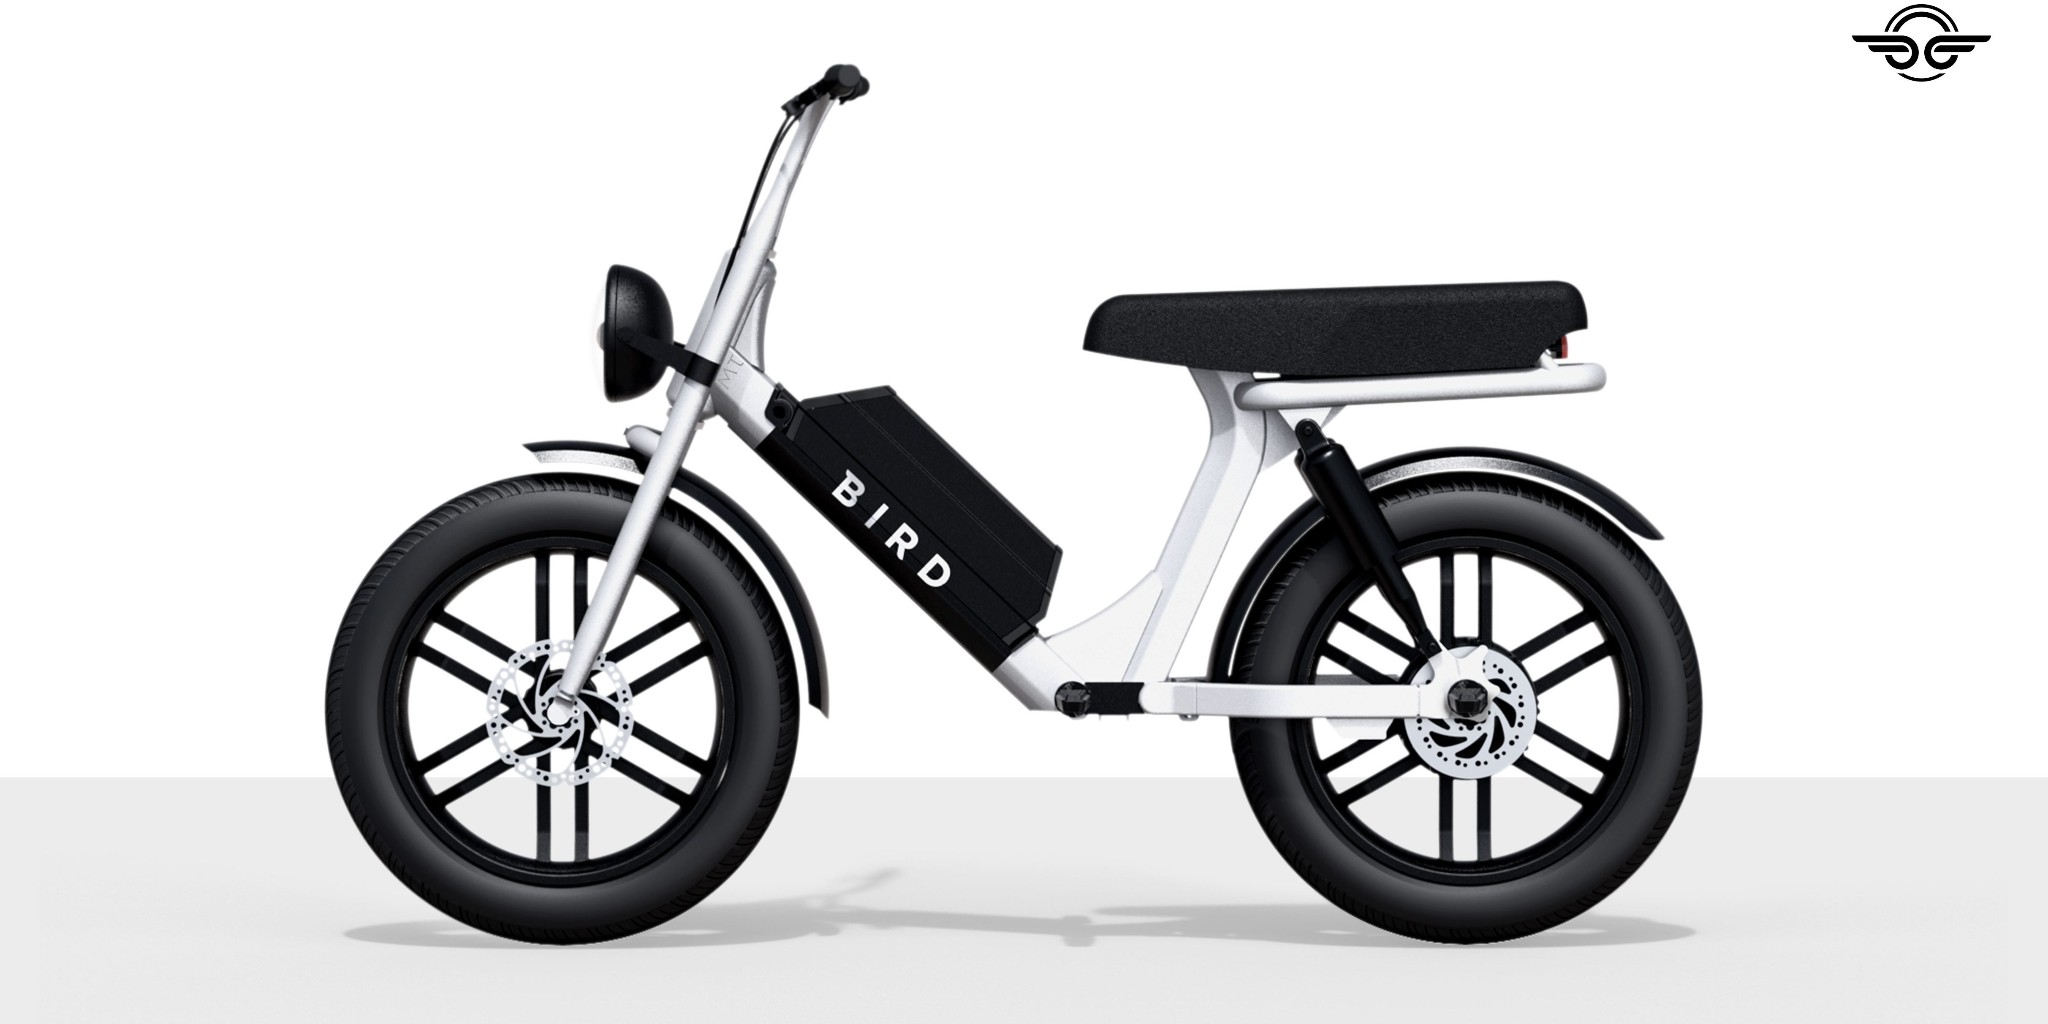 Bird Cruiser electric moped could be coming soon based on new clues